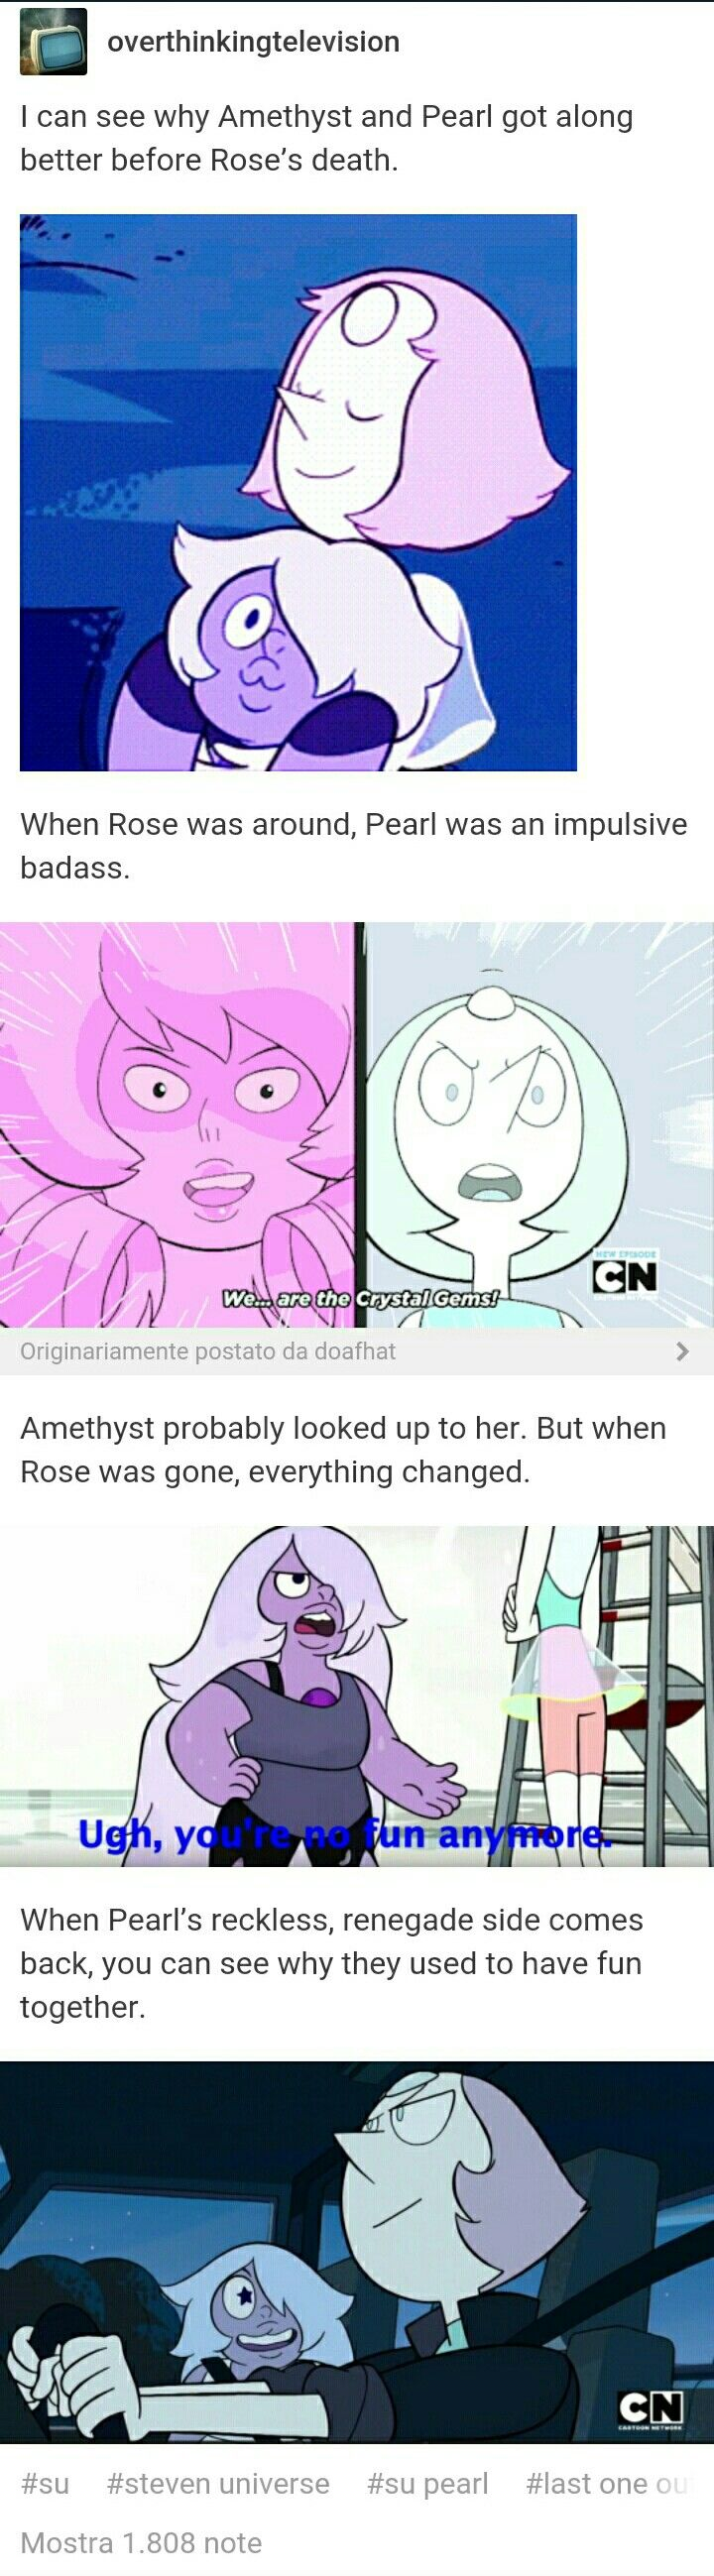 Needing flashbacks over here (Side note: Pearl's jacket in the last frame is the only item of clothing I ever want to put on my body)